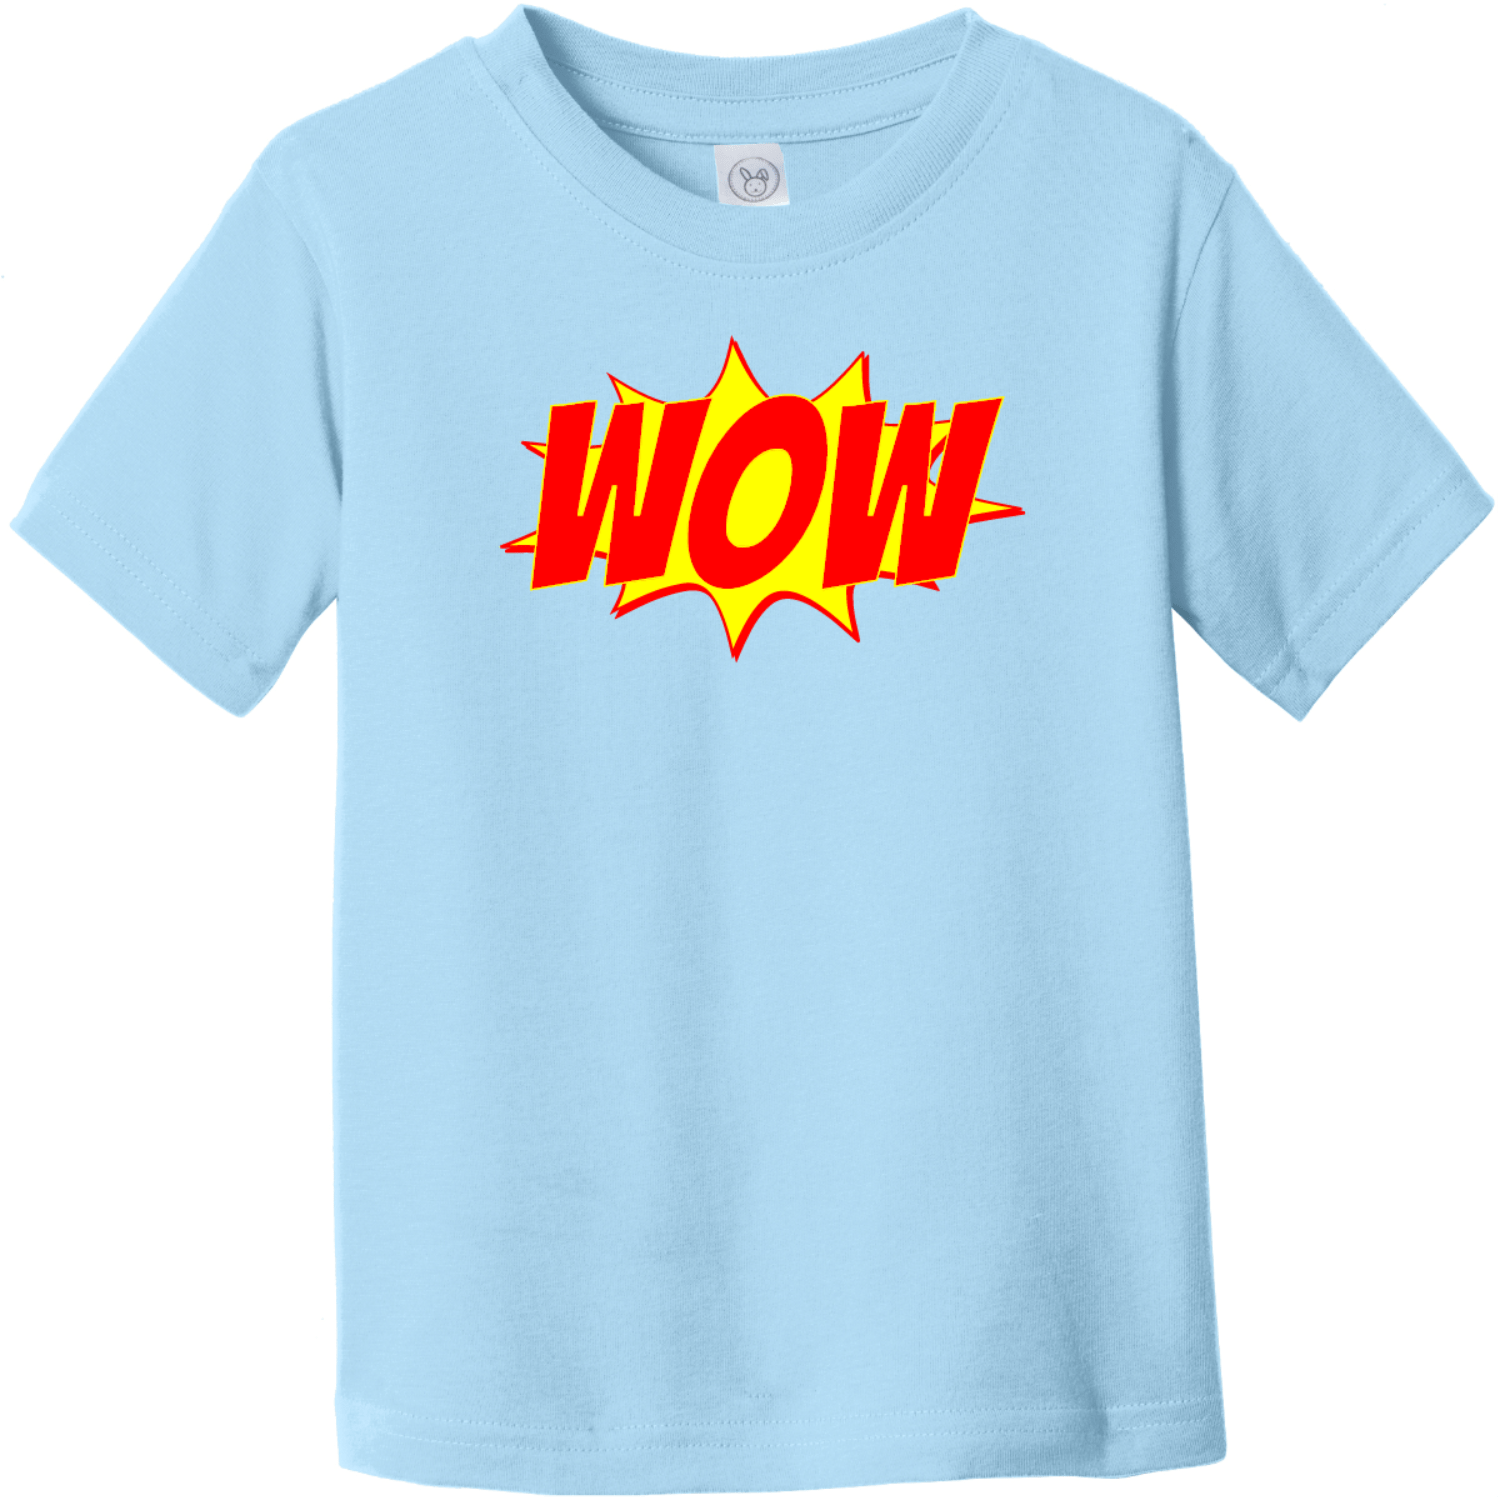 Wow Word Explosion Toddler T-Shirt Light Blue Rabbit Skins Toddler Fine Jersey Tee RS3321